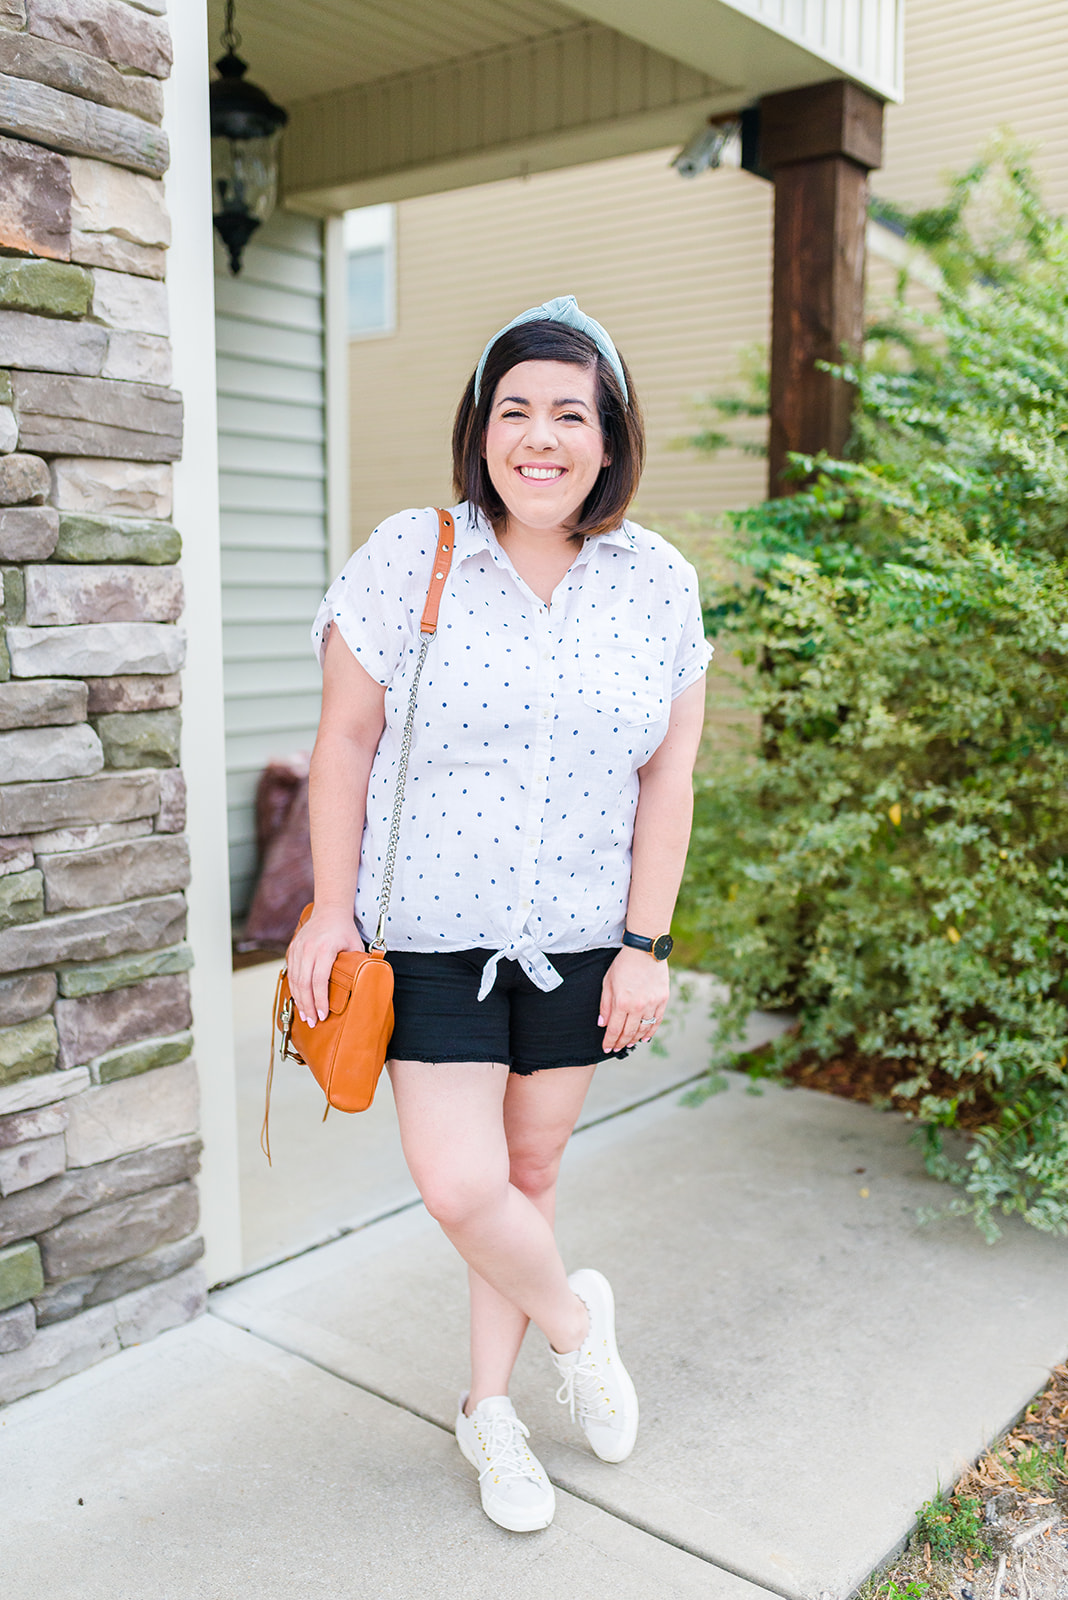 Polka Dot Linen Top for Summer-@headtotoechic-Head to Toe Chic